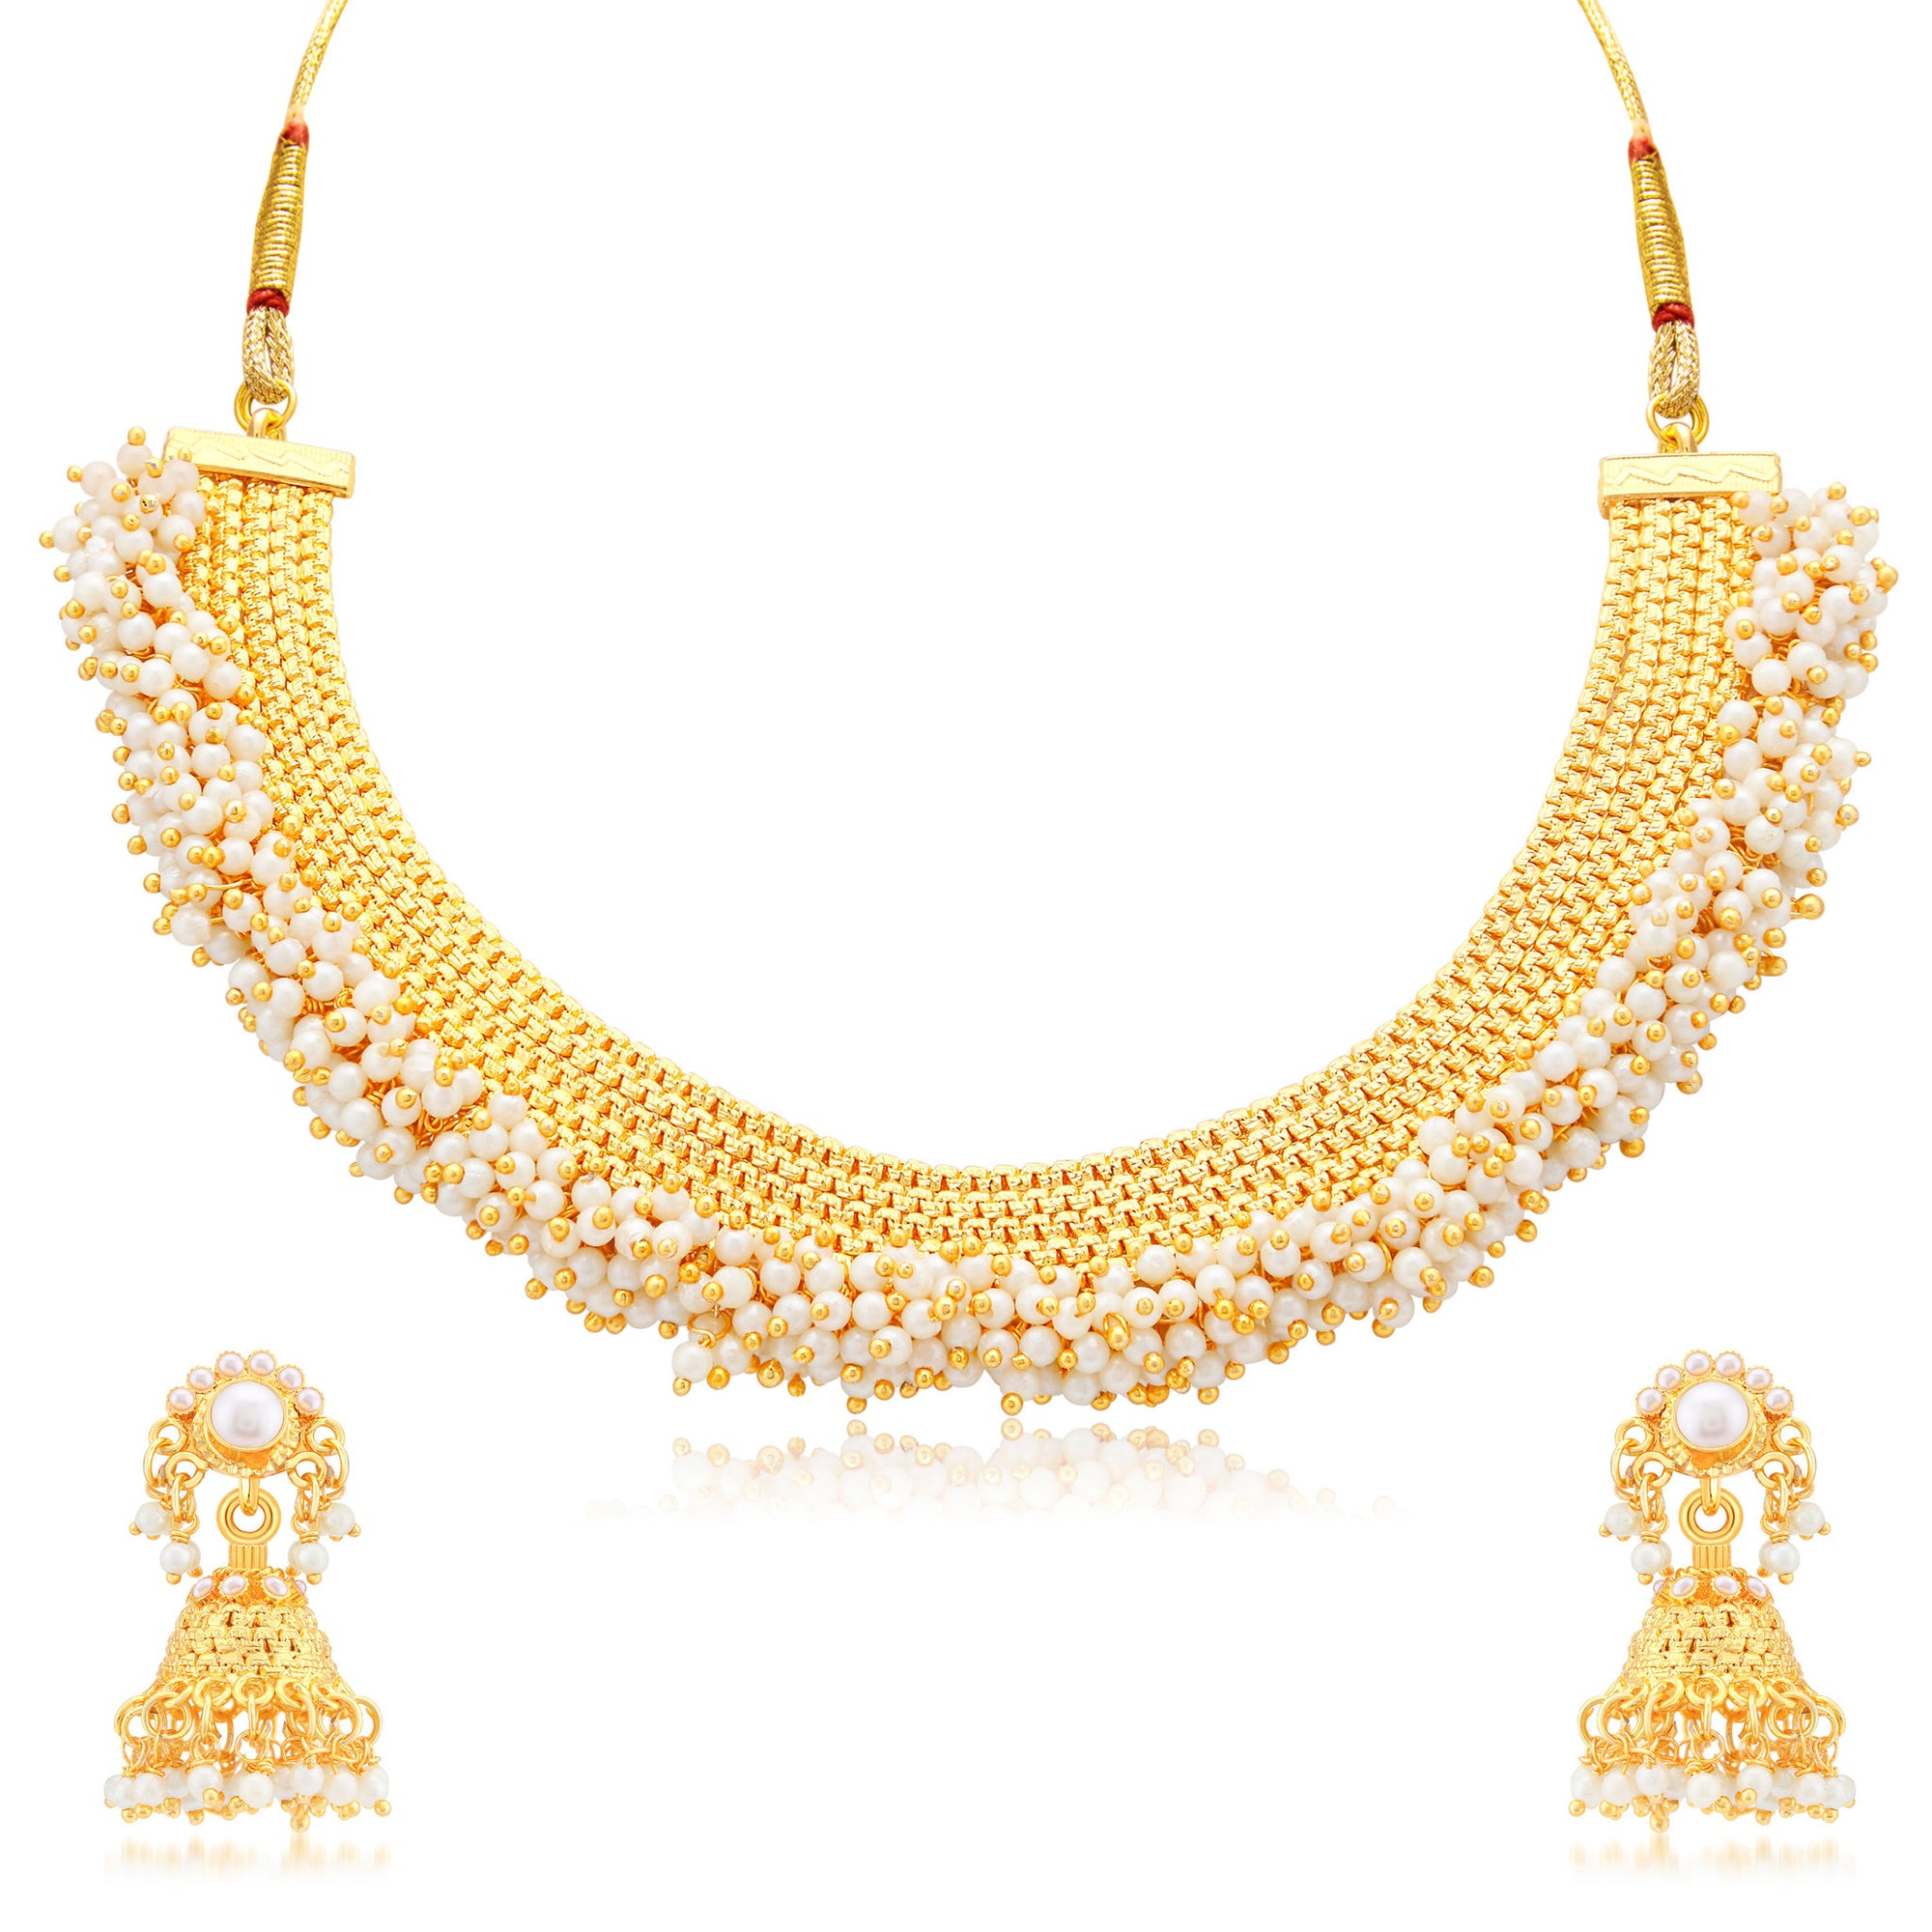 Sukkhi Traditional Gold Plated Necklace Set: Sukkhi Astonish Gold Plated Choker Necklace Set For Women